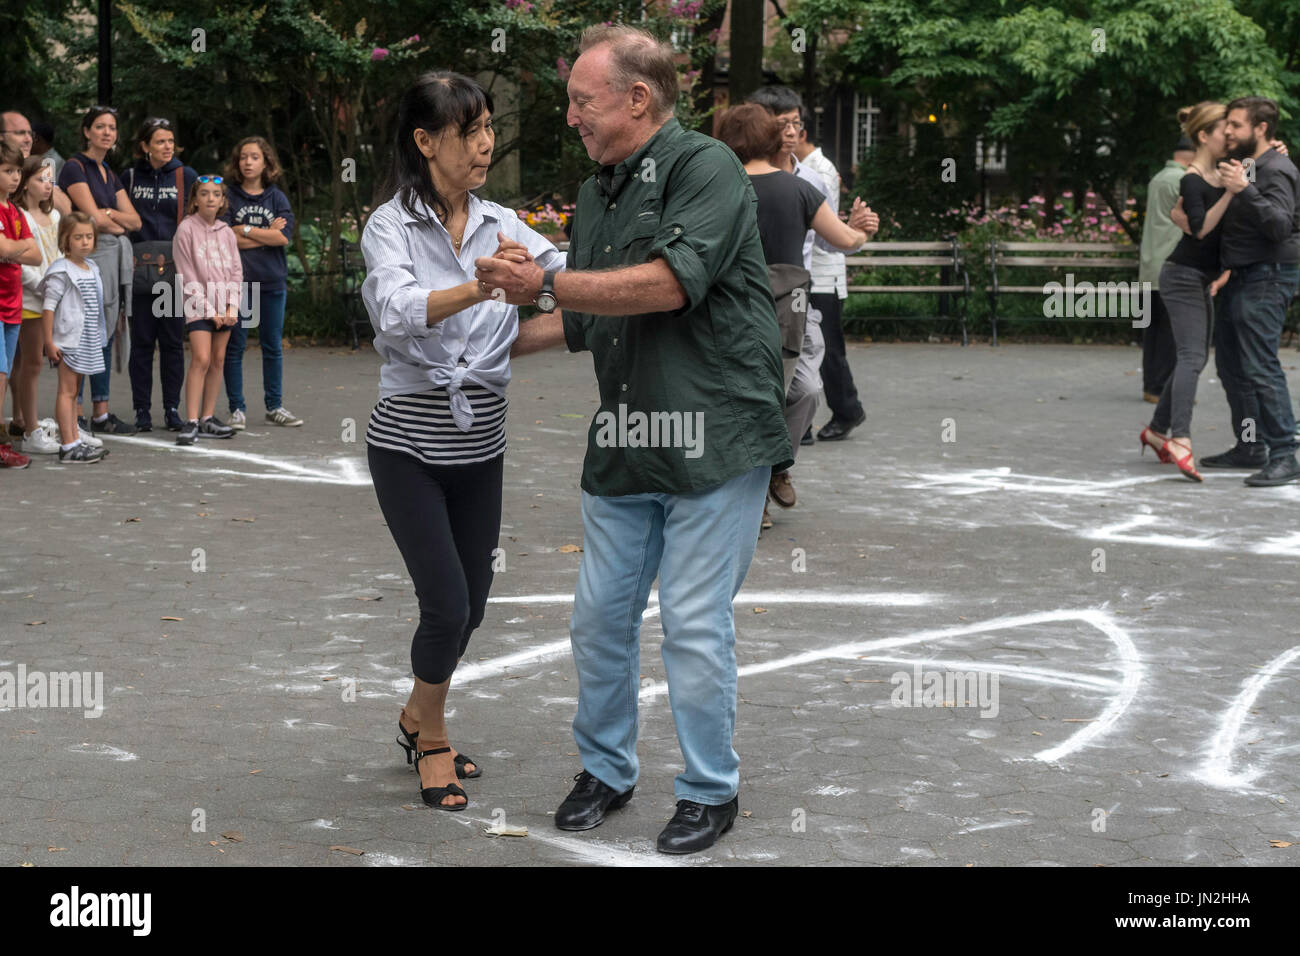 How To Learn Dance Stock Photos Tango Steps Diagram New York Ny 25 July 2017 A Couple Dancing The On Summer